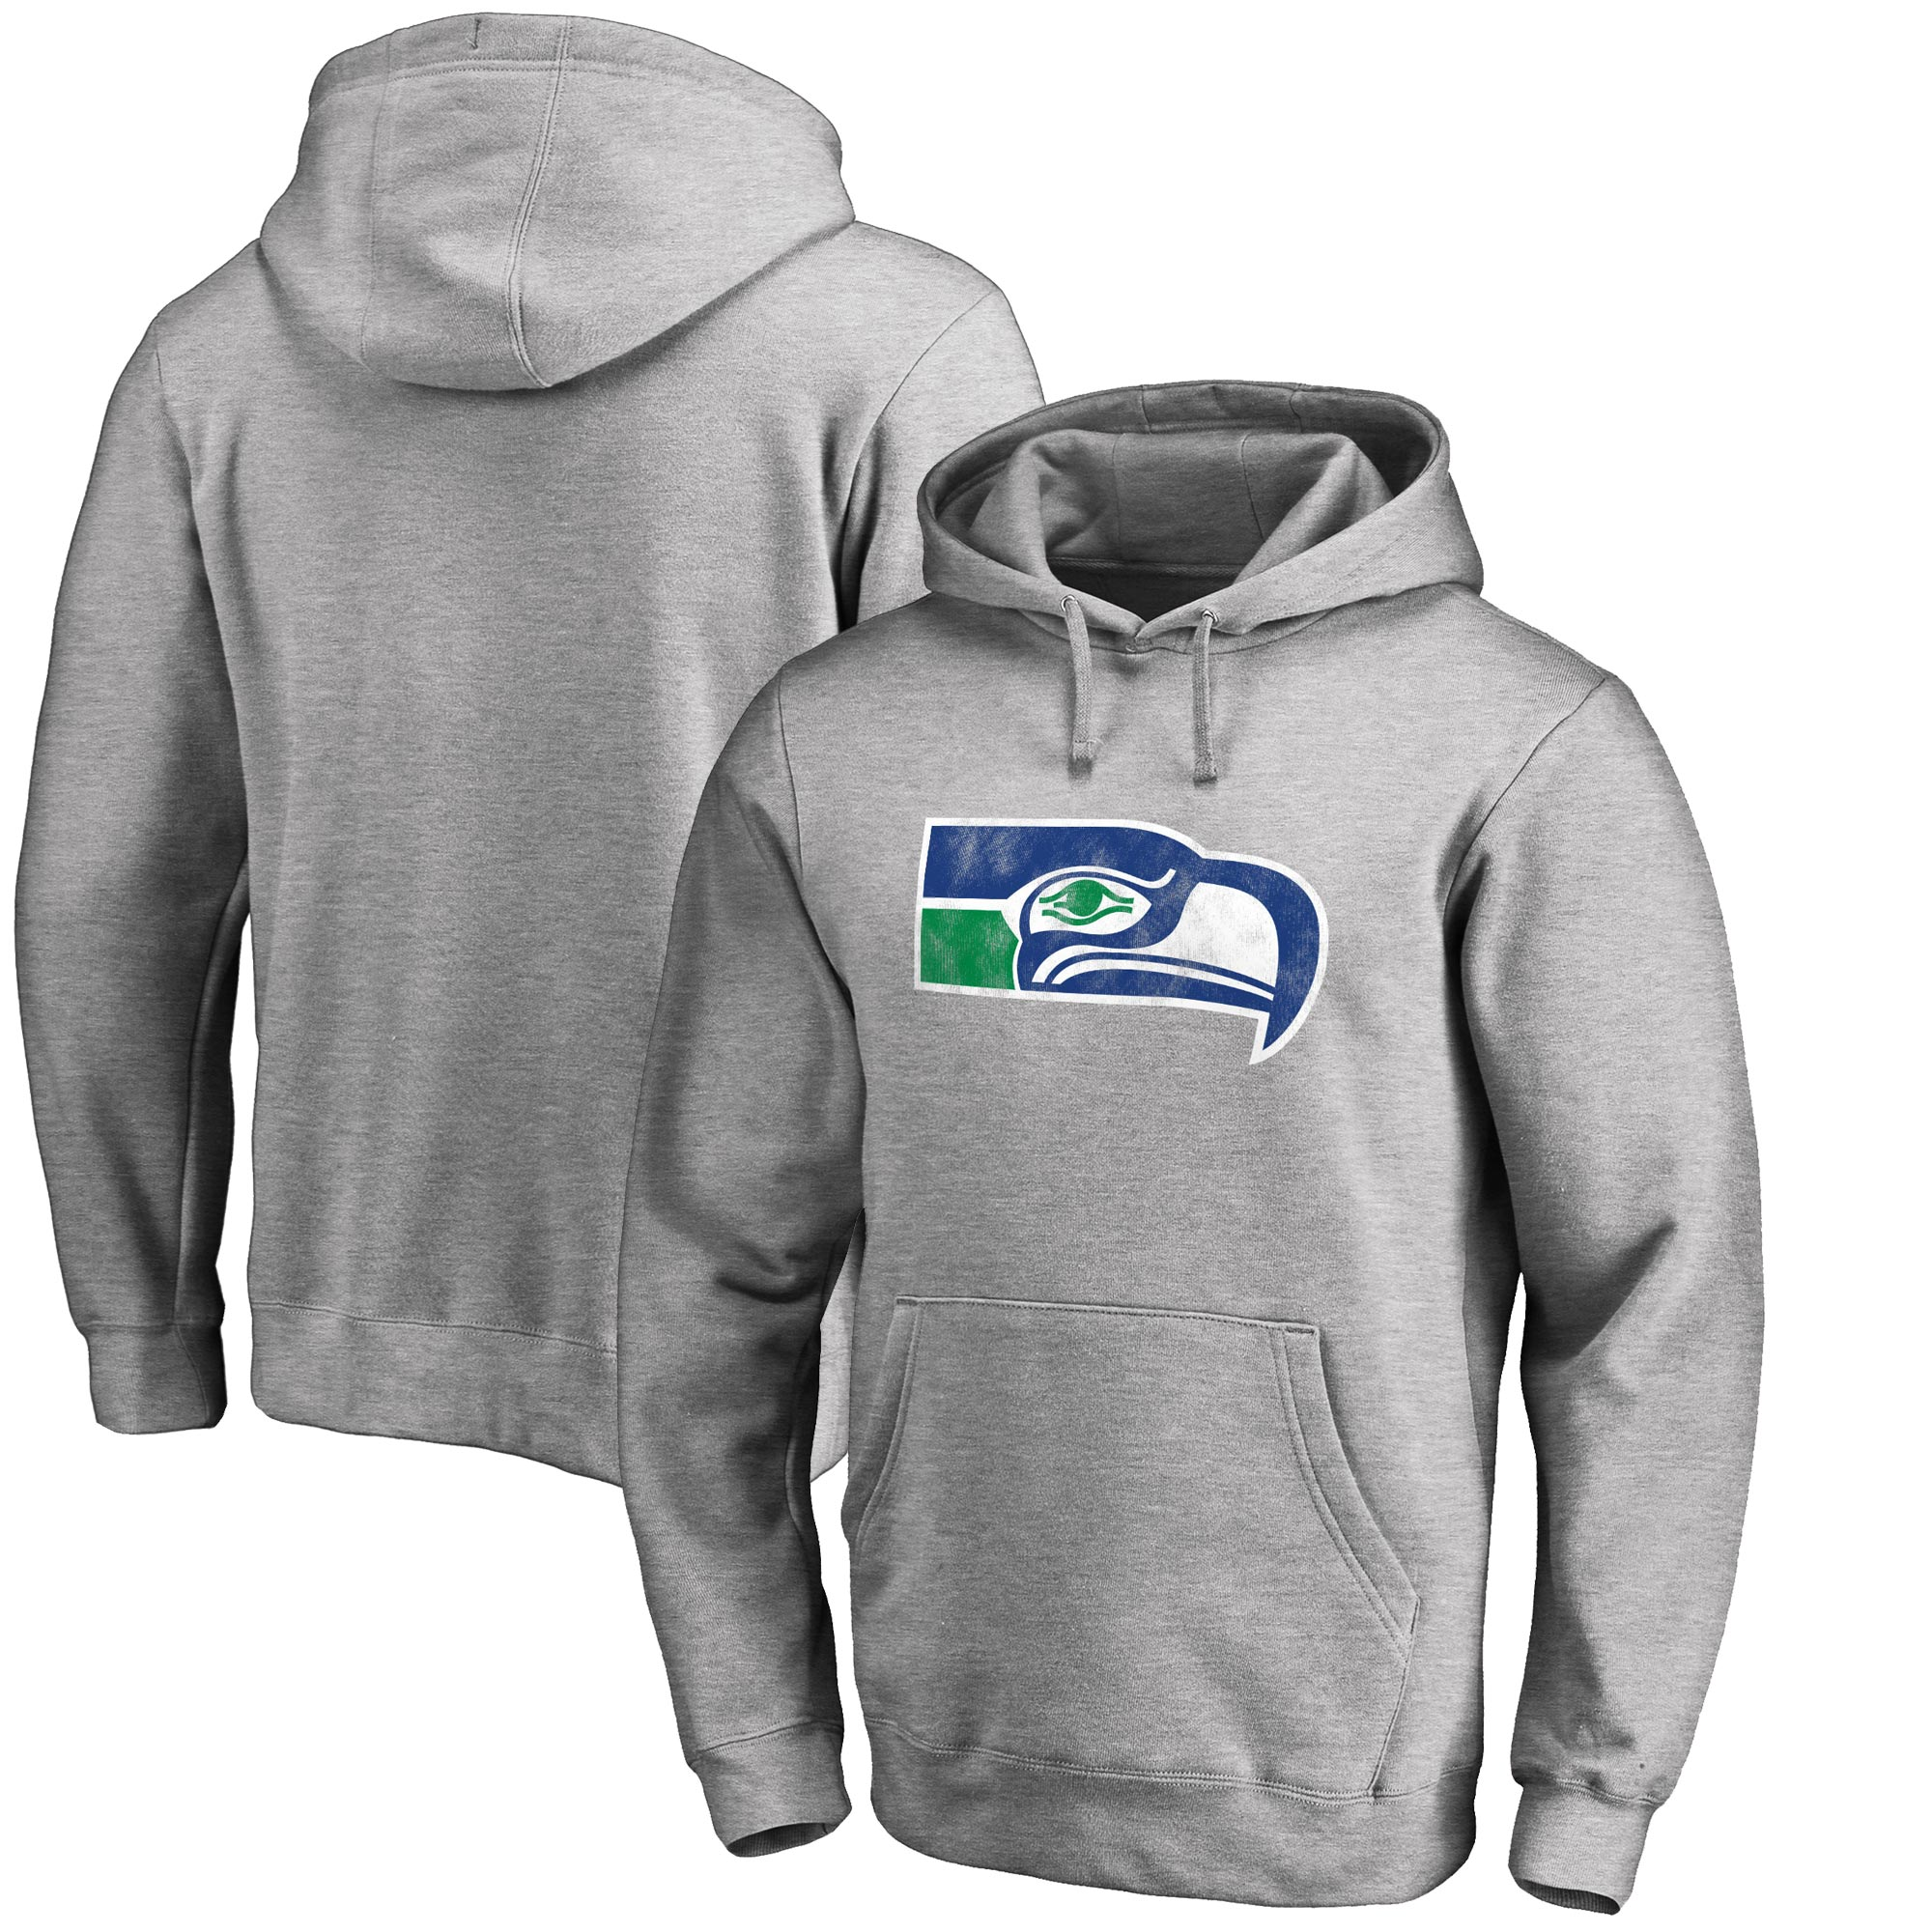 Seattle Seahawks NFL Pro Line Throwback Logo Pullover Hoodie - Gray